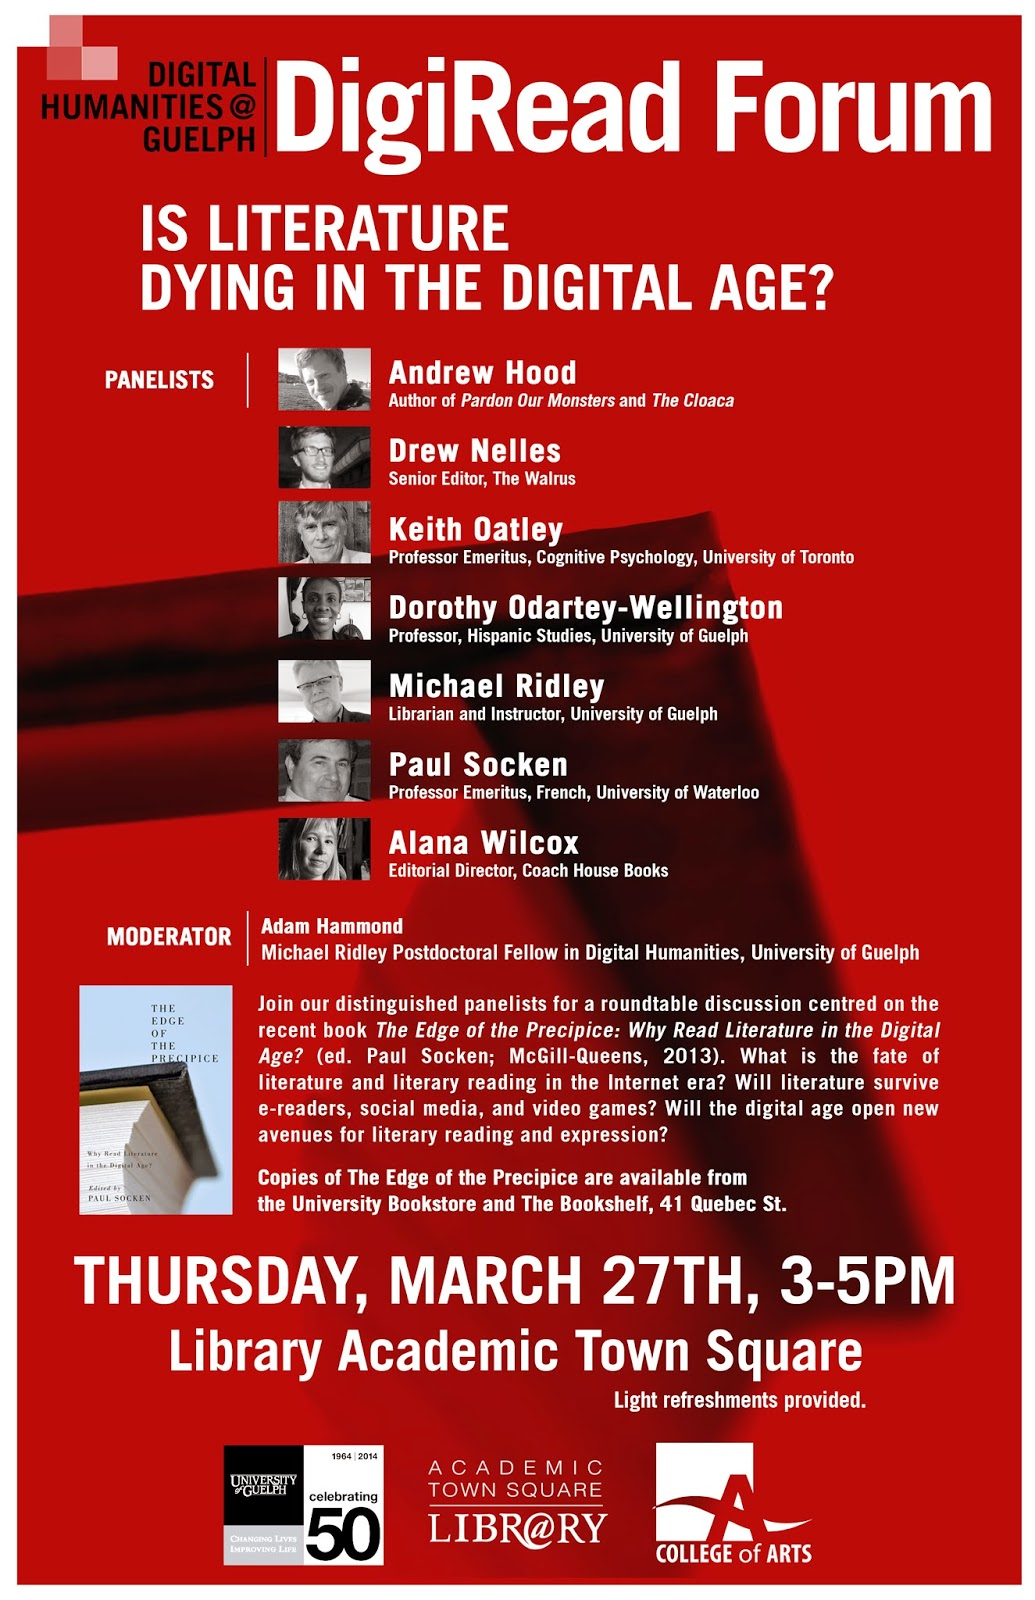 https://www.uoguelph.ca/arts/digiread-presents-literature-dying-digital-age-roundtable-discussion